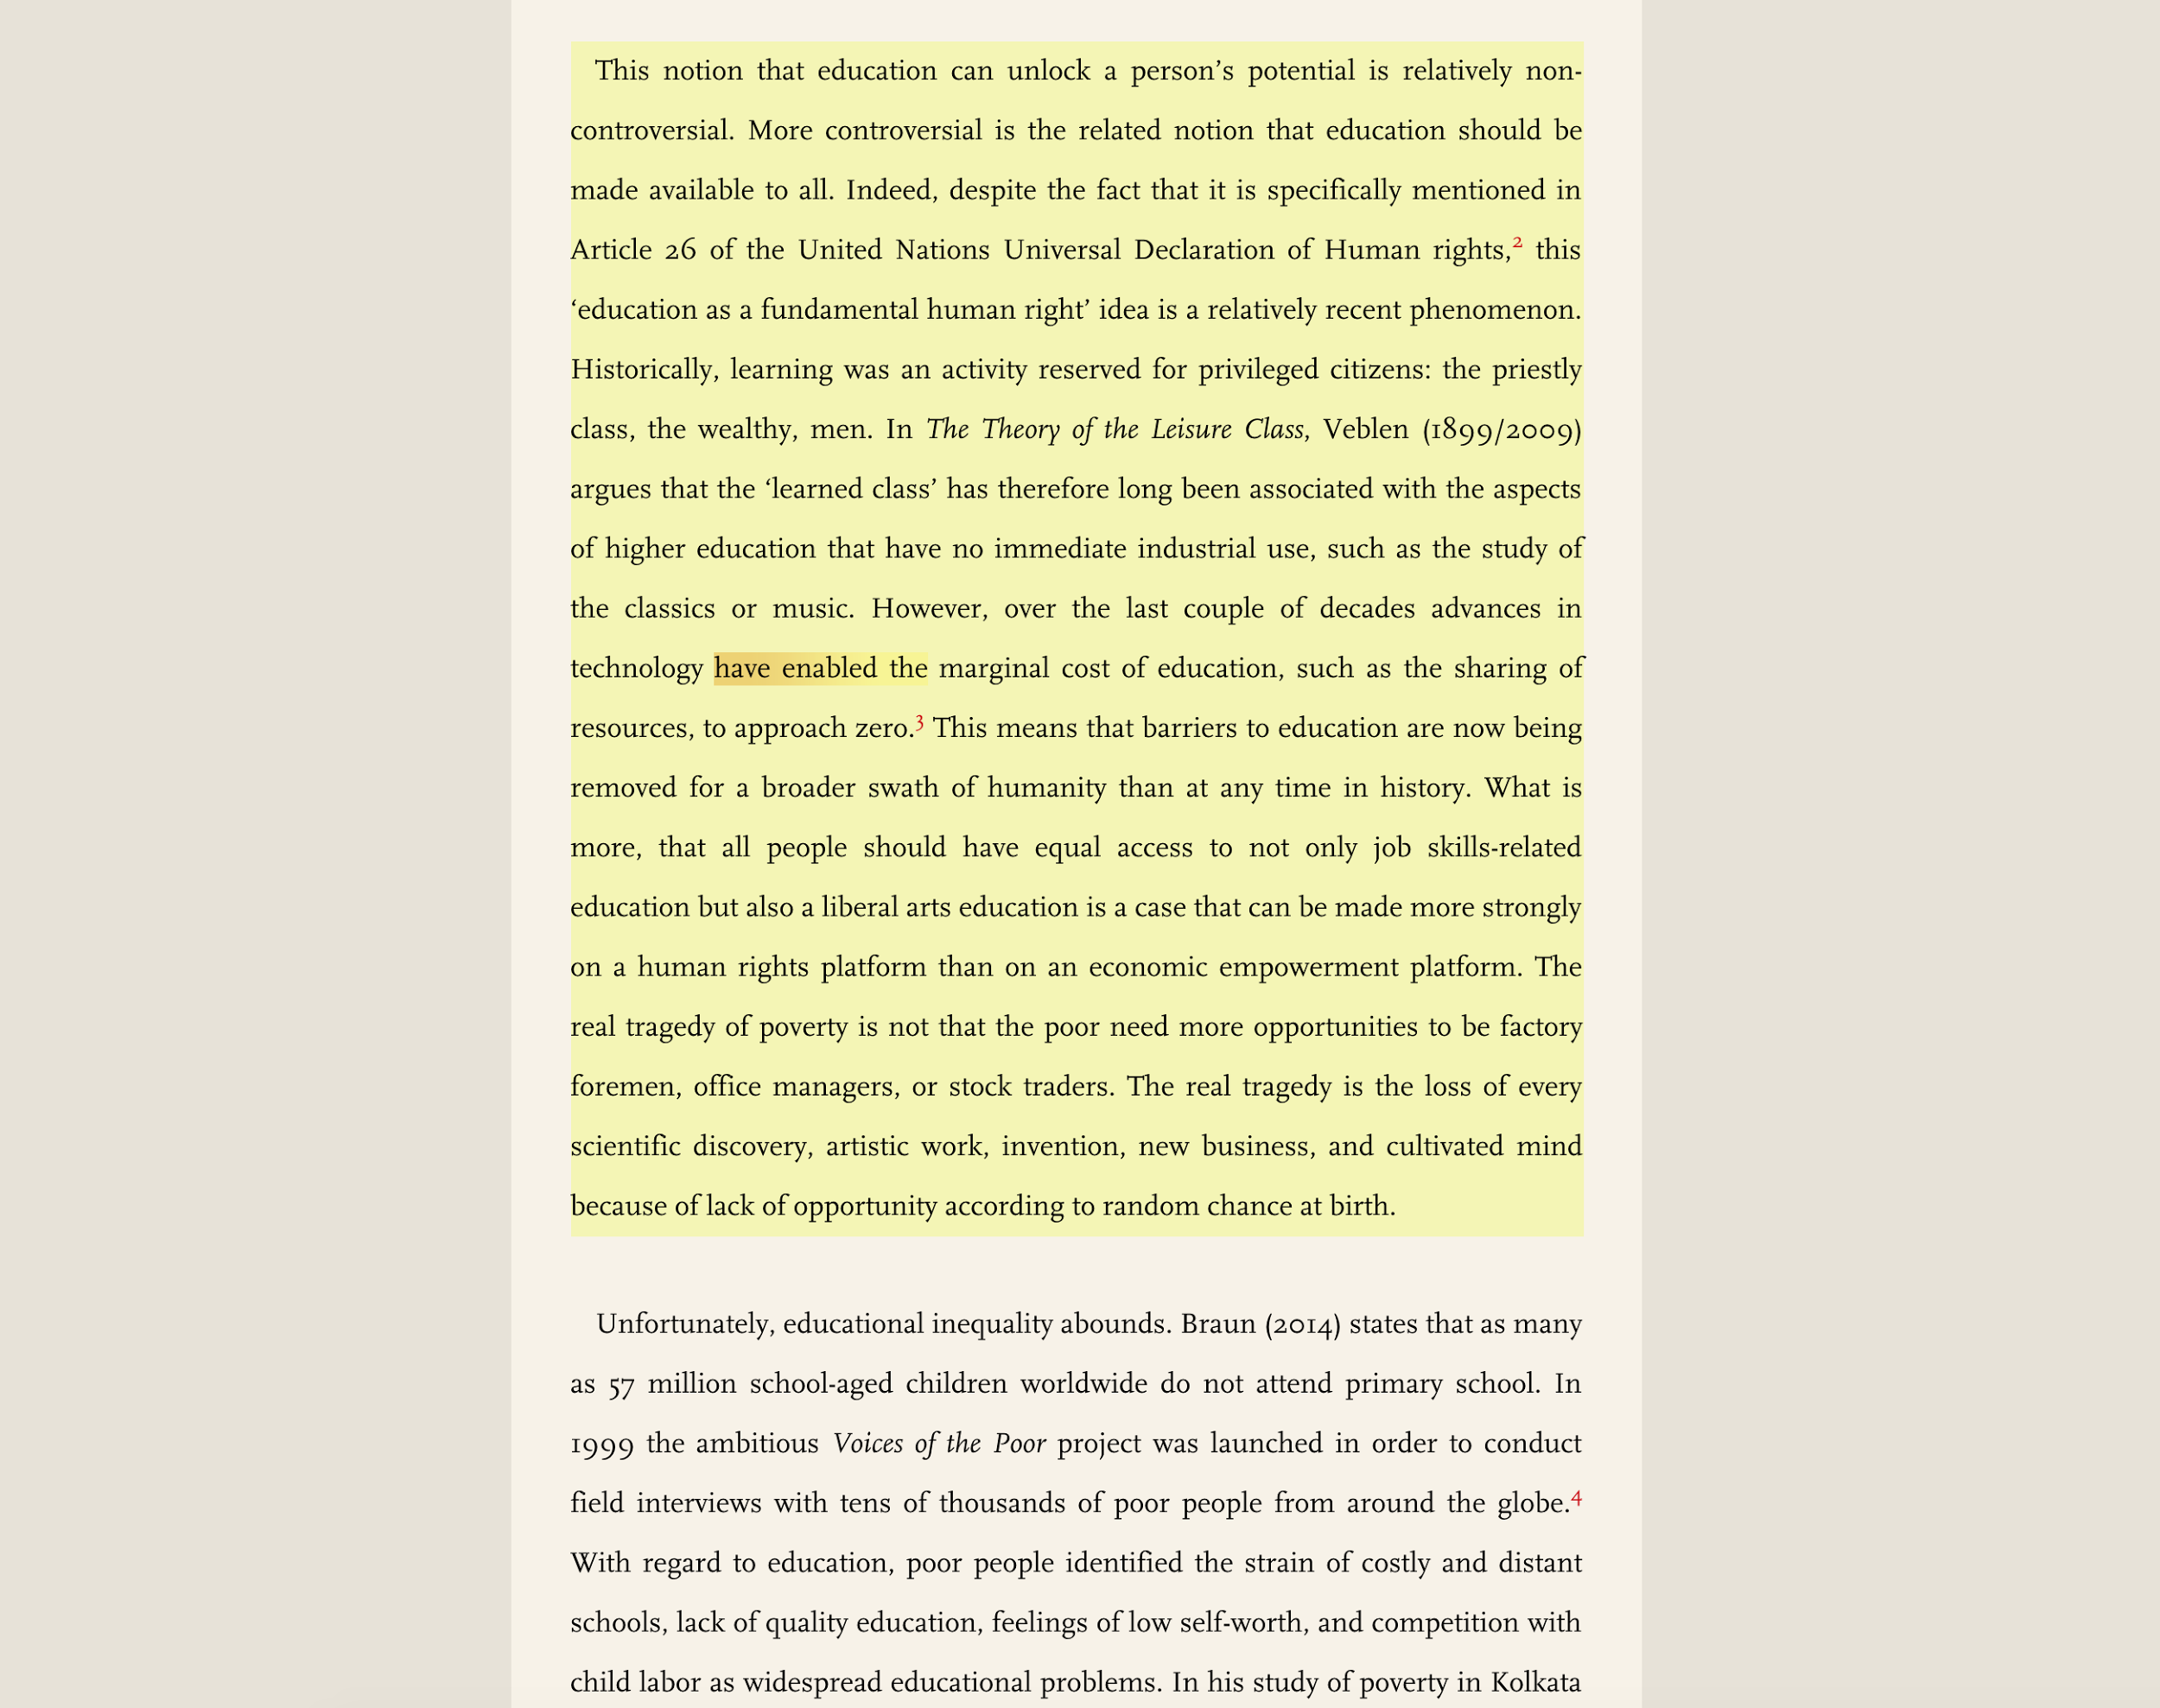 Text in the reader that has been annotated.